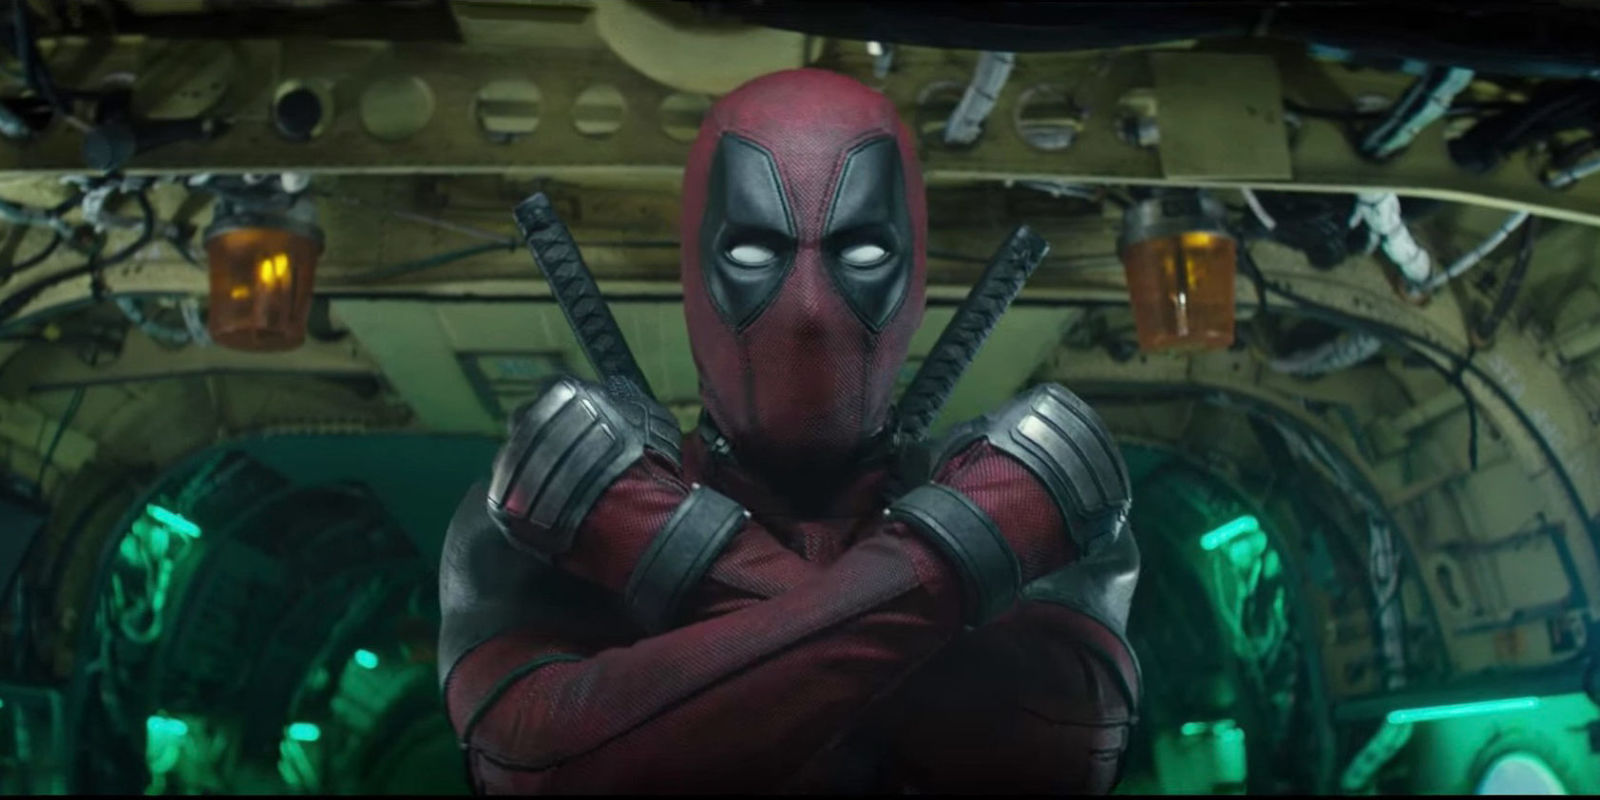 Deadpool 2 Release Date Cast Plot And Everything You Need To Know Deadpool 2 Release Date, Cast, Plot And Everything You